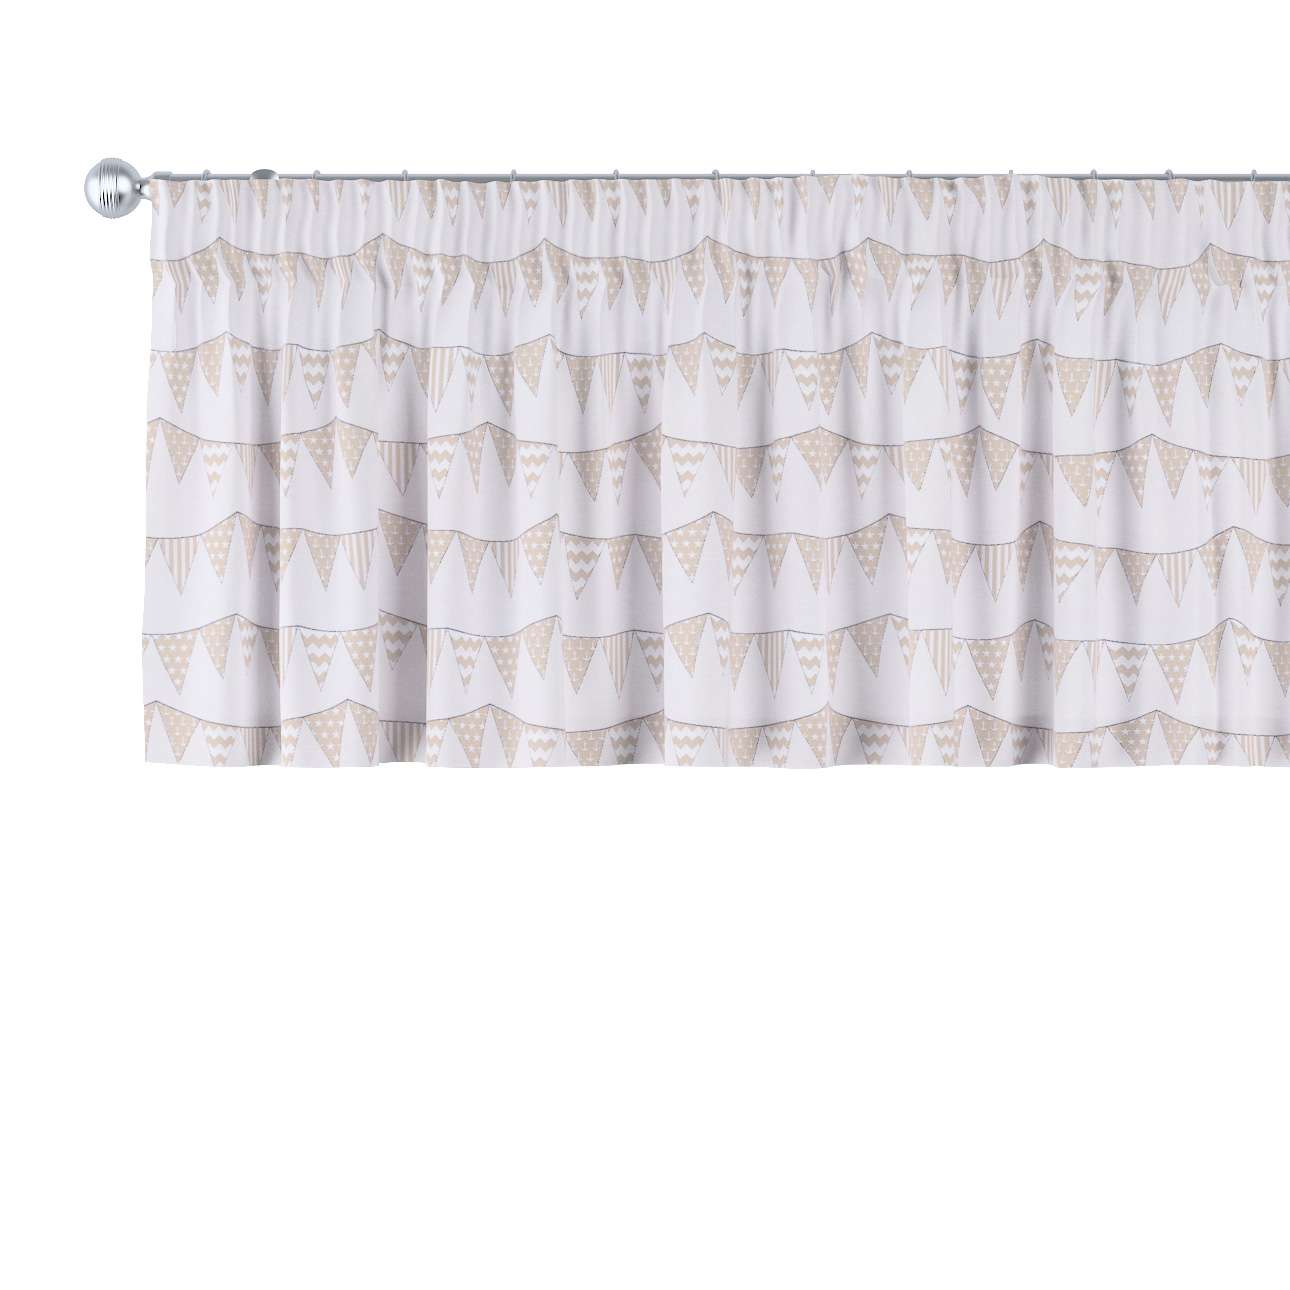 Pencil pleat pelmet 130 x 40 cm (51 x 16 inch) in collection Marina, fabric: 140-65